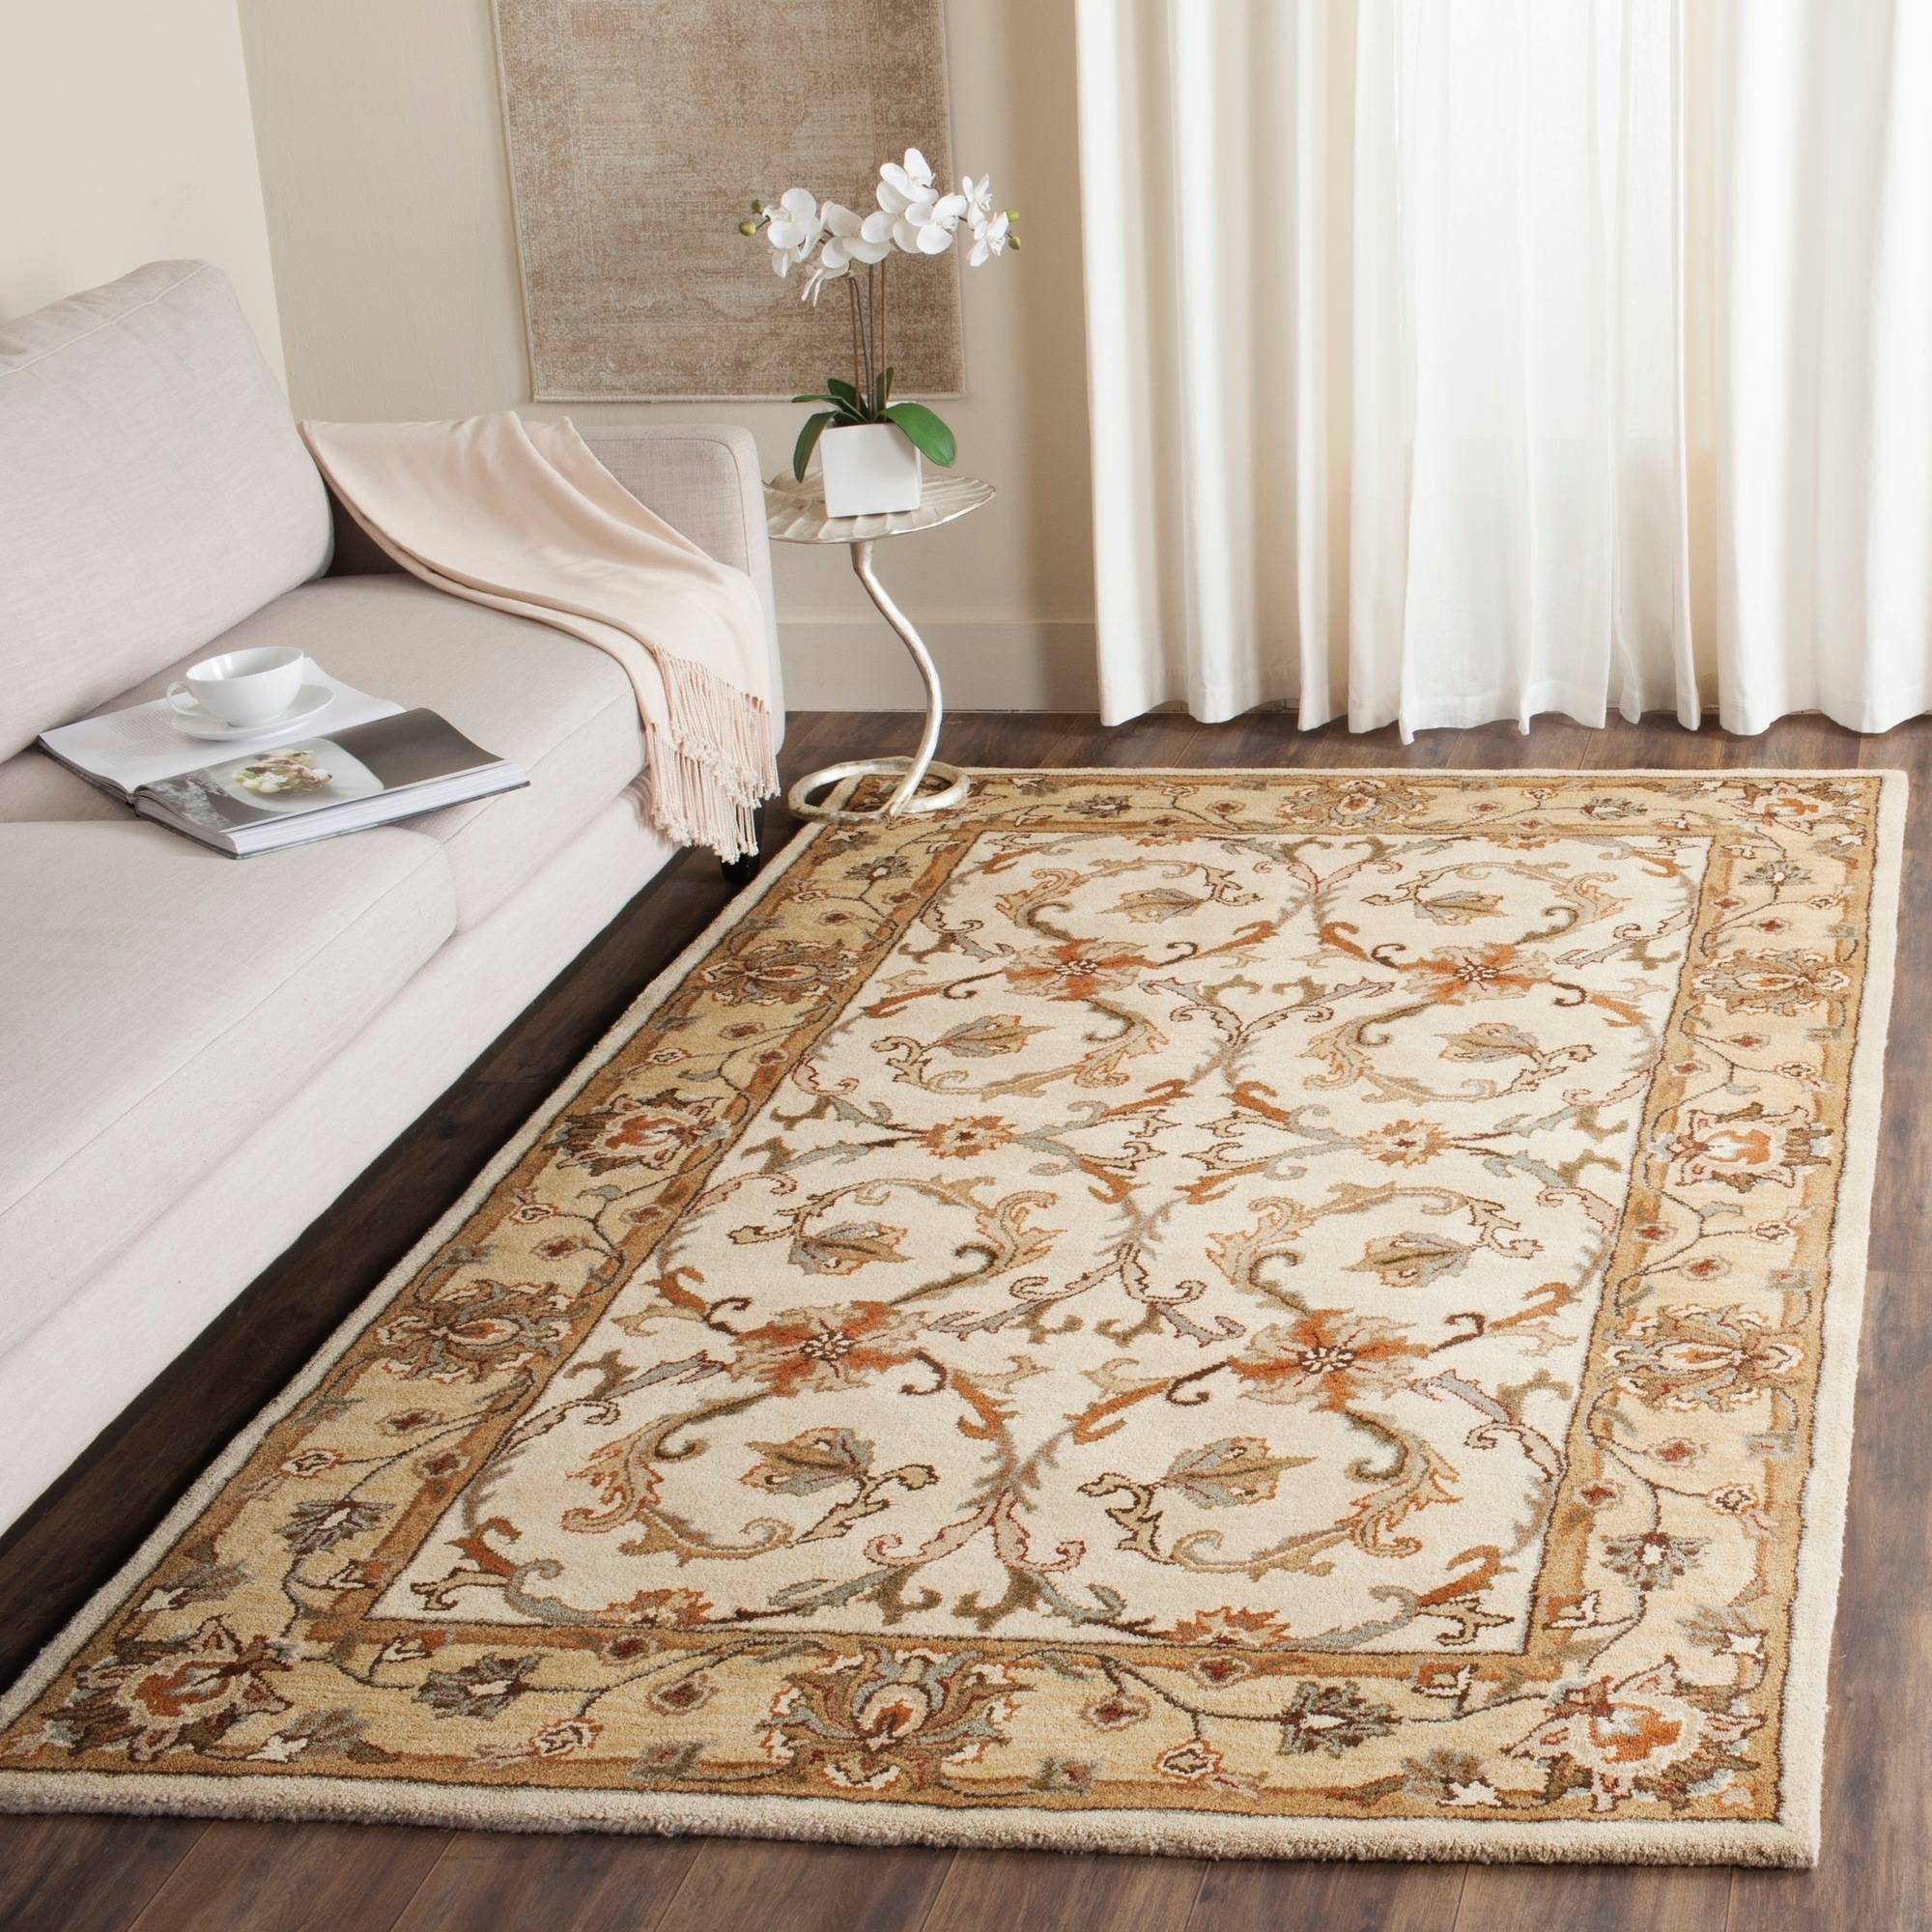 Safavieh Heritage Norwood Hand-Tufted Wool Area Rug, Beige/Gold